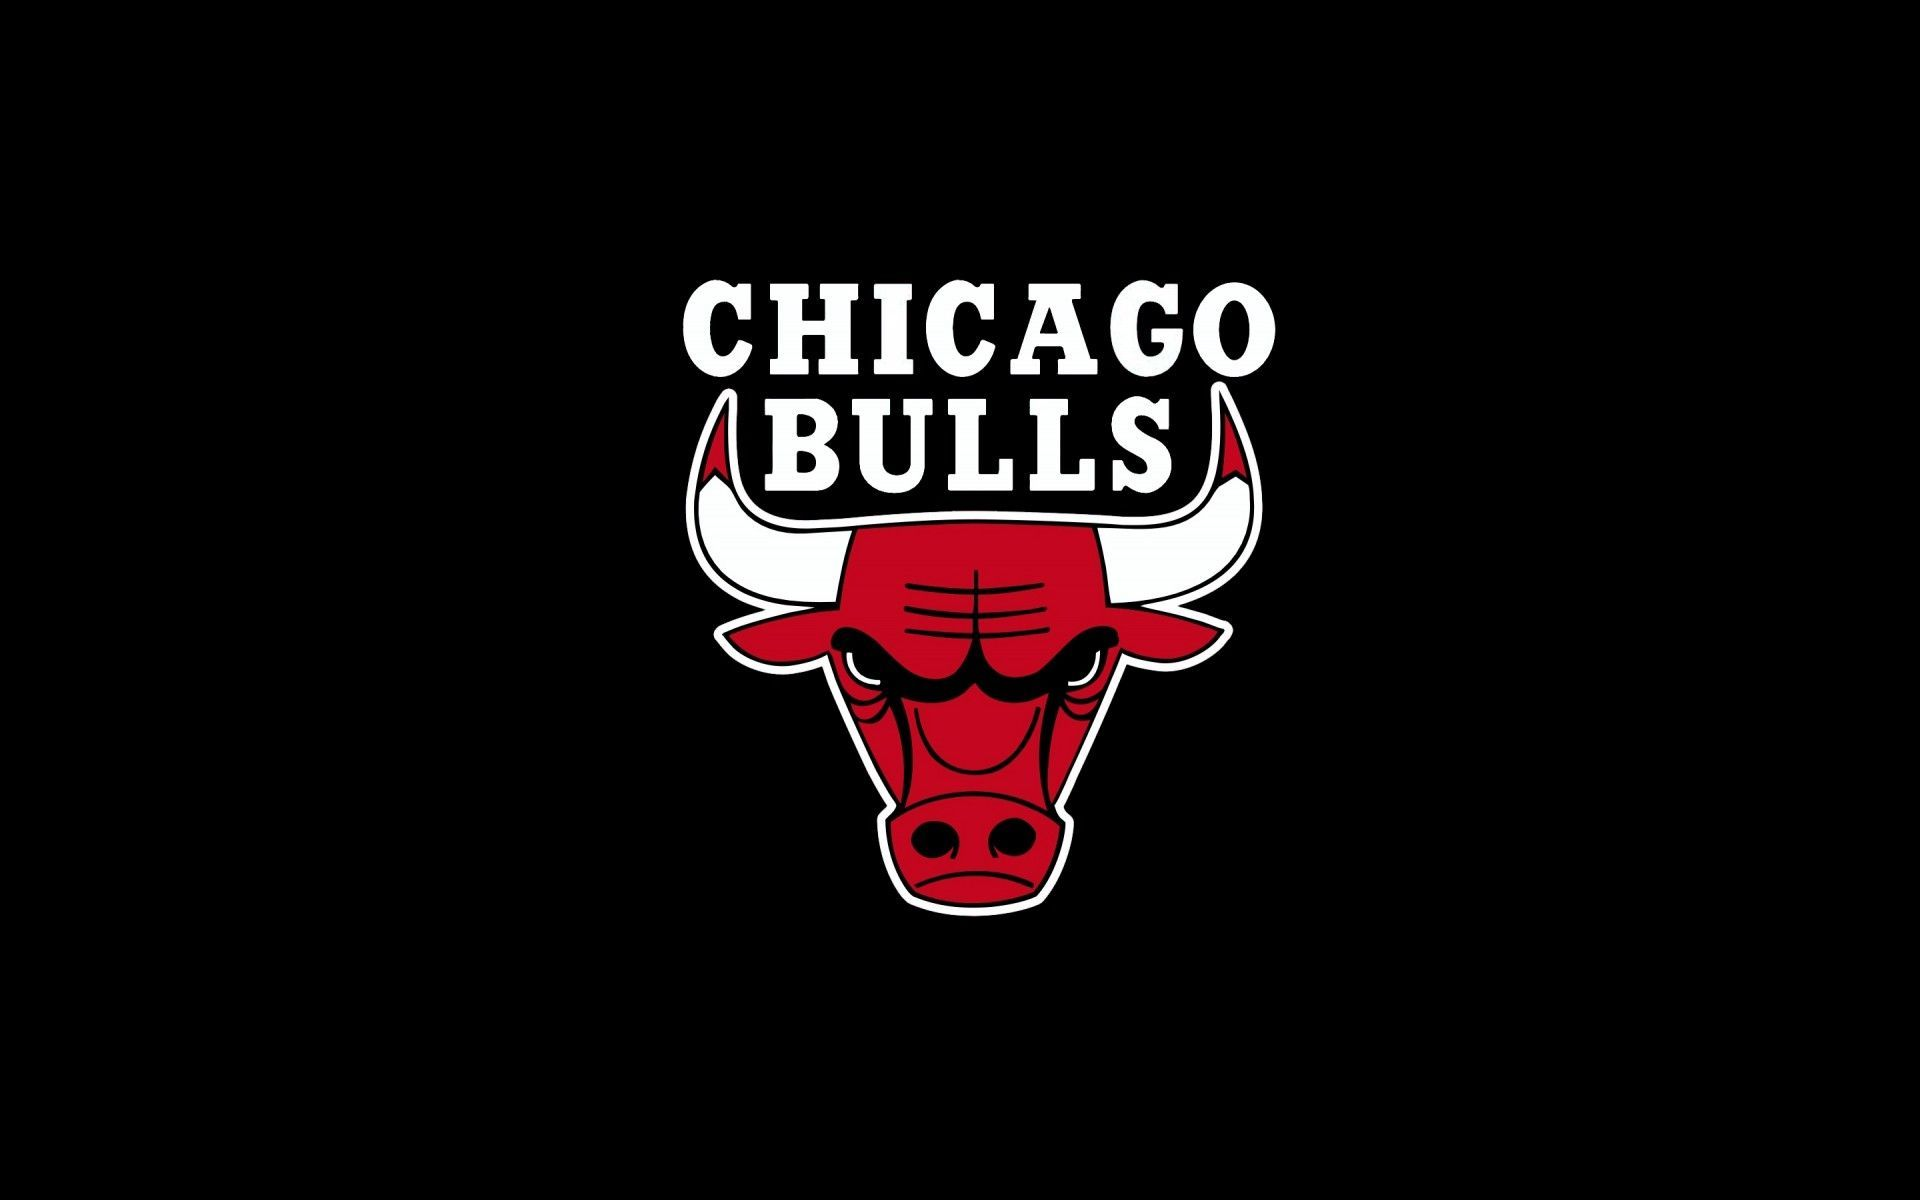 Wallpapers Chicago Bulls